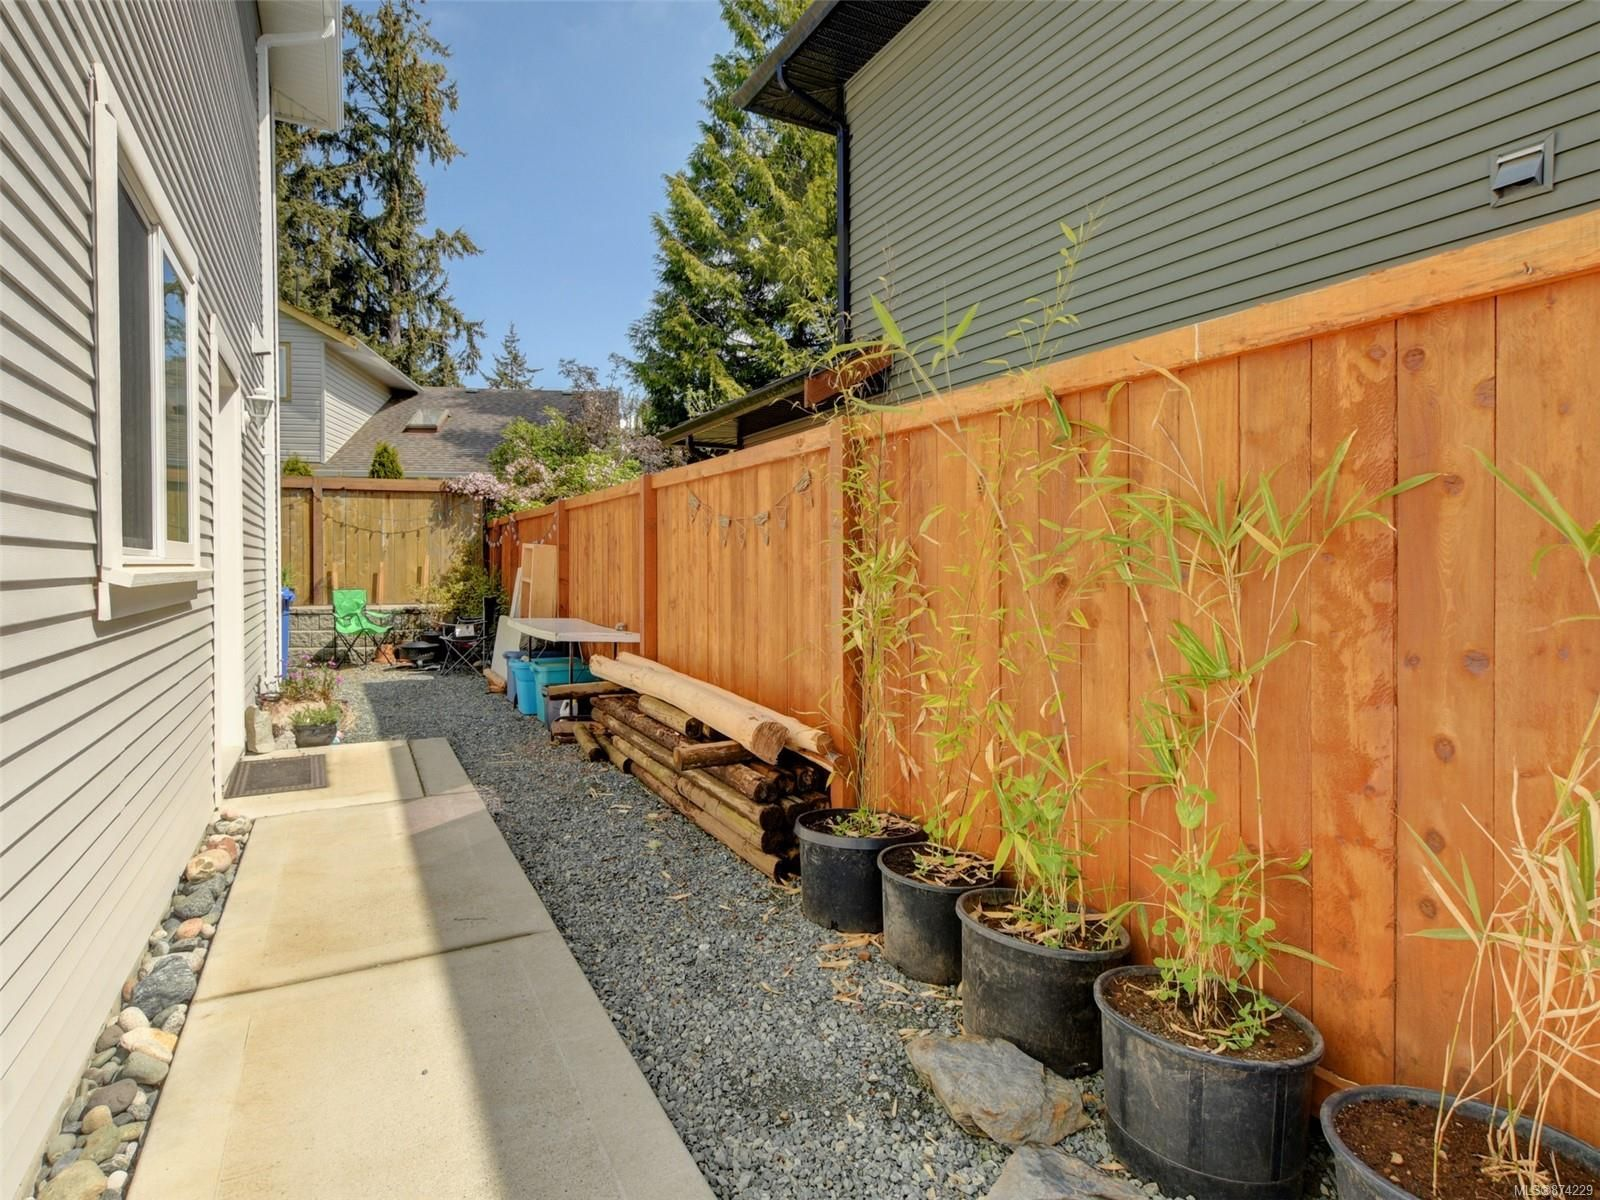 Photo 22: Photos: 1921 Tominny Rd in : Sk Sooke Vill Core House for sale (Sooke)  : MLS®# 874229